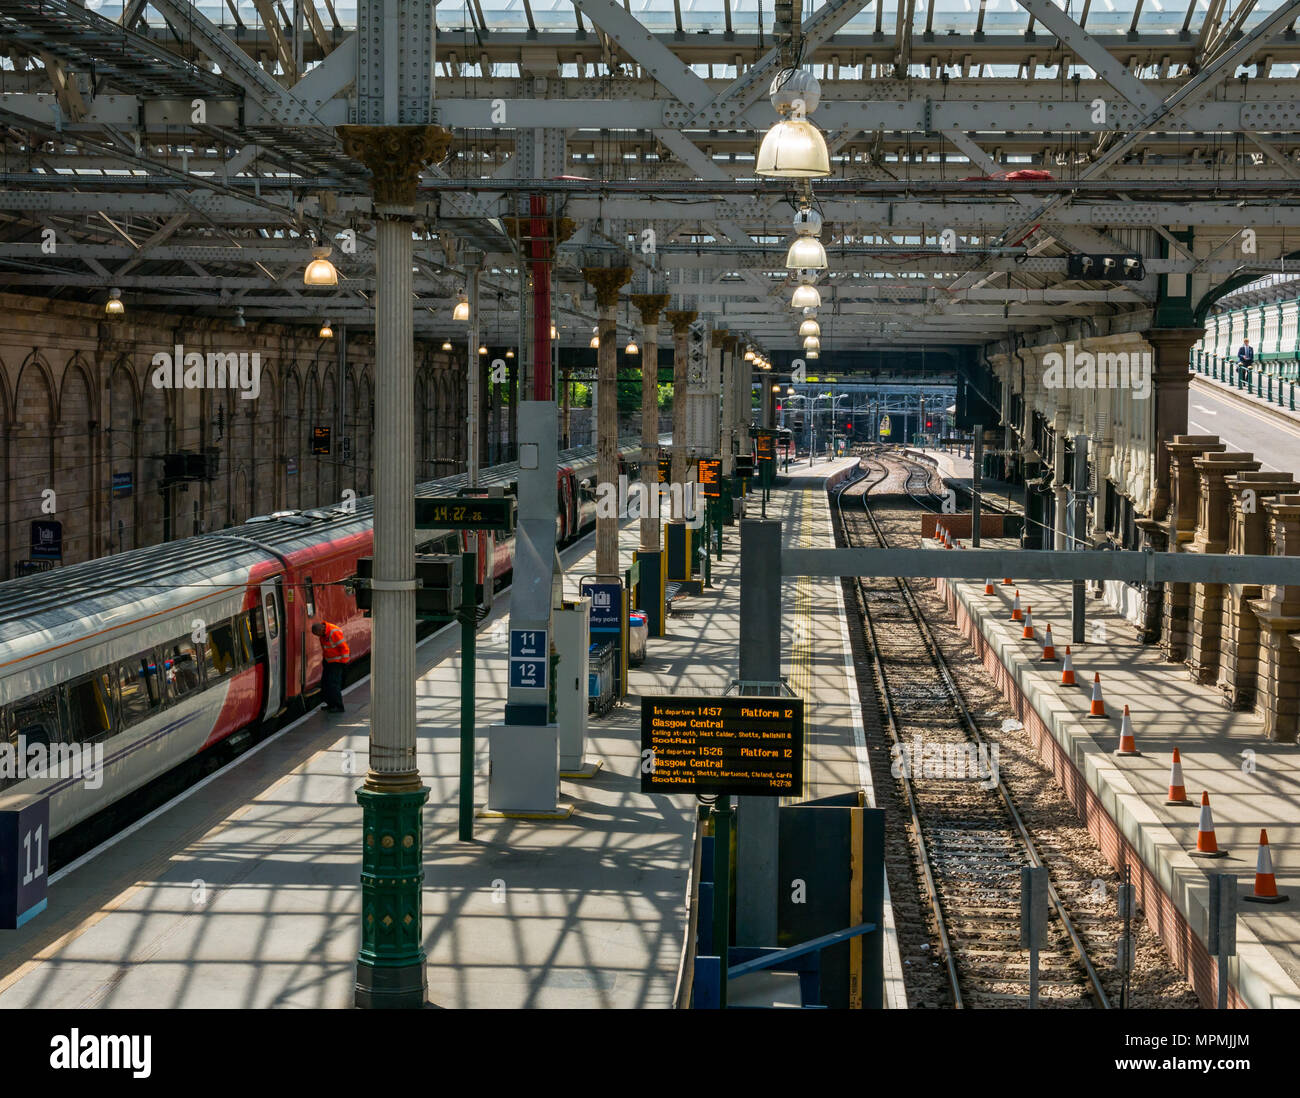 virgin-east-coast-train-at-platform-11-w